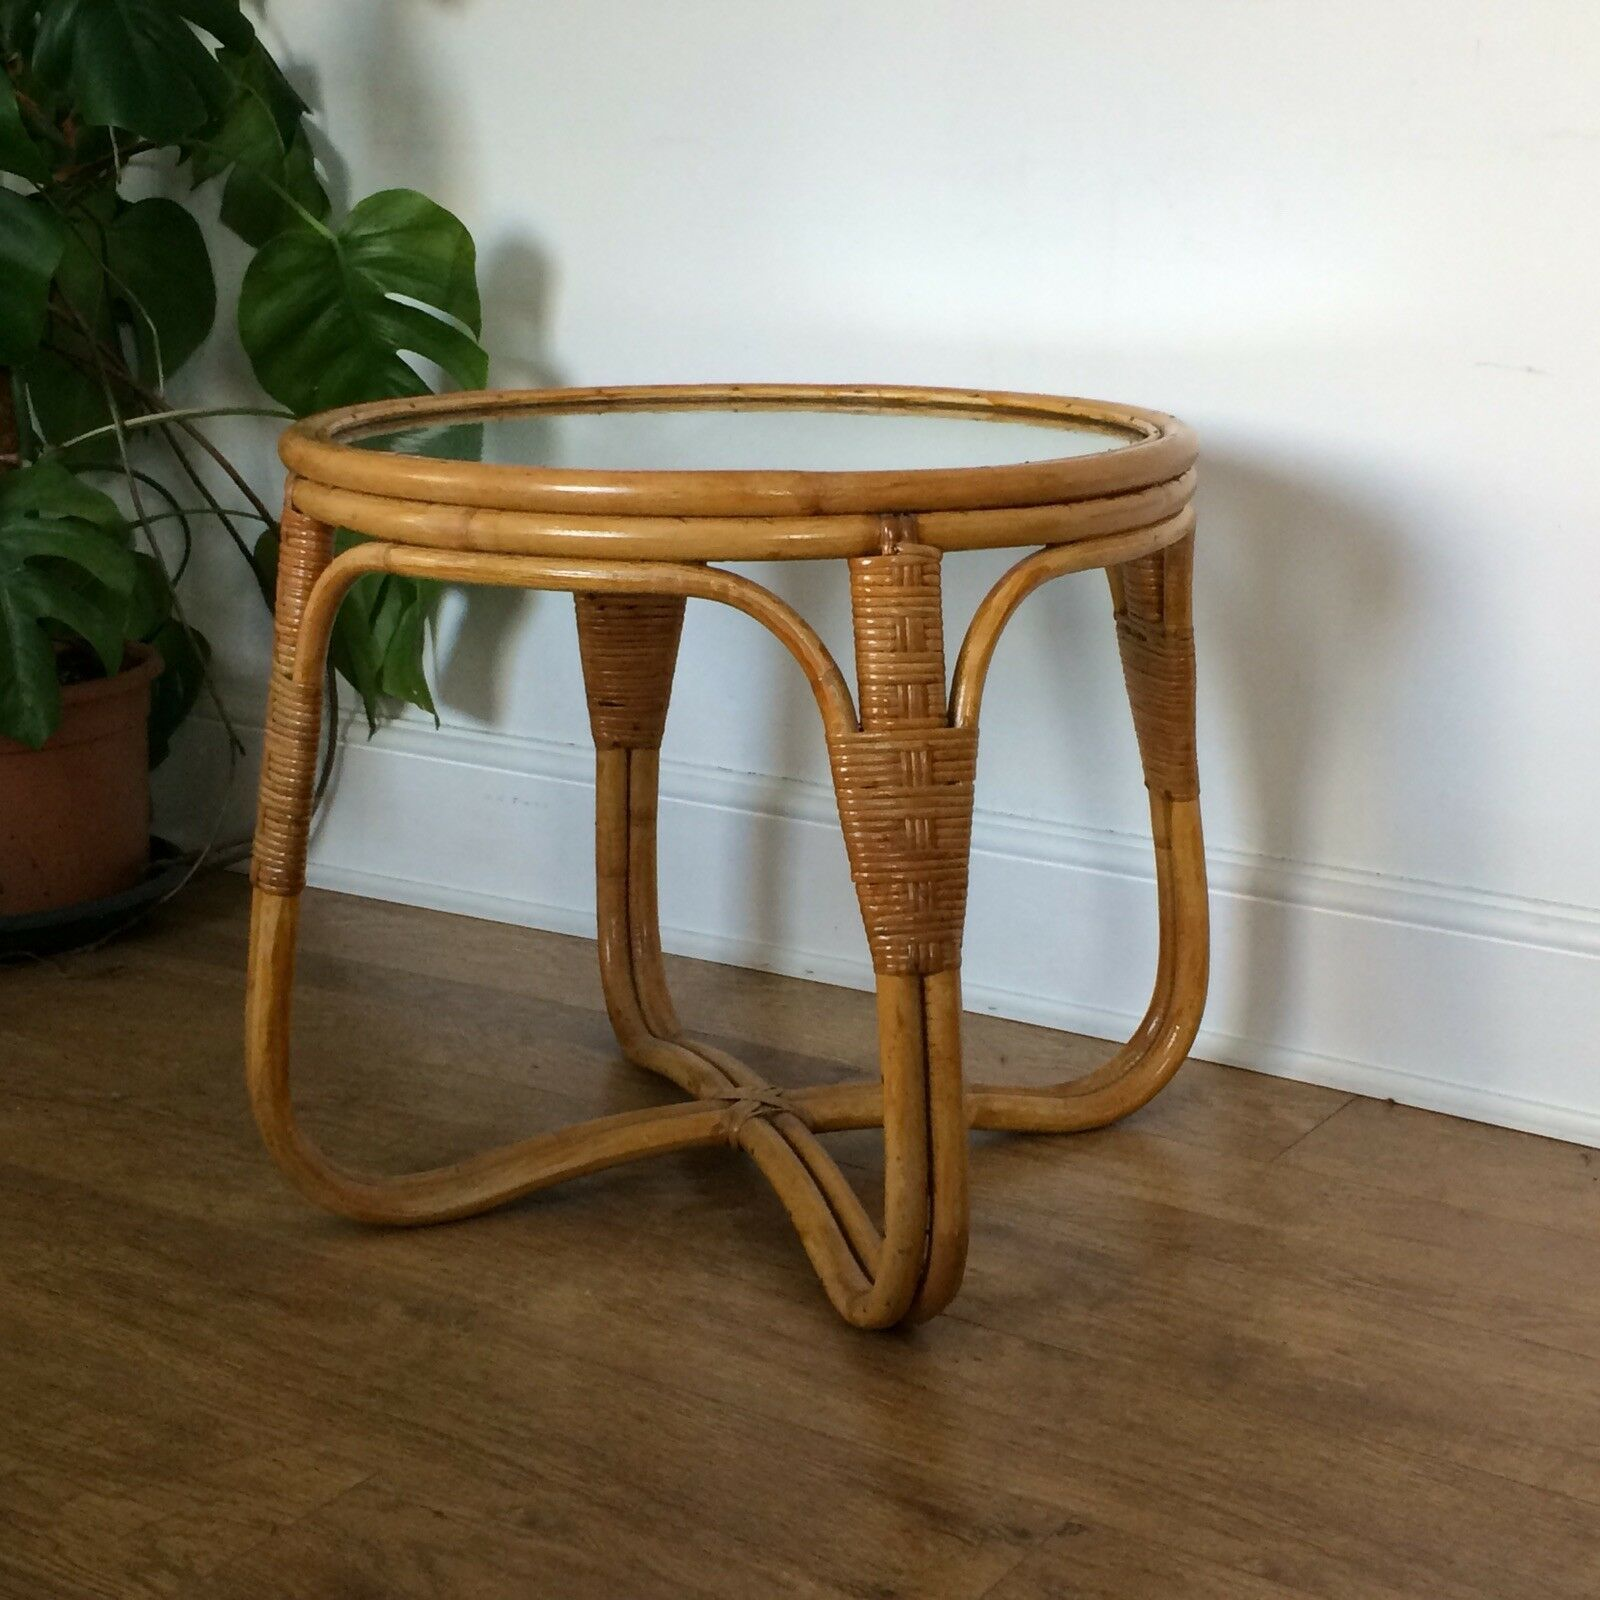 Vintage Retro 1960s 1970s Bamboo Rattan Wicker Round Side Table Great Sturdy Design With Chunky Bamboo Structure And Textur Round Side Table Side Table Rattan